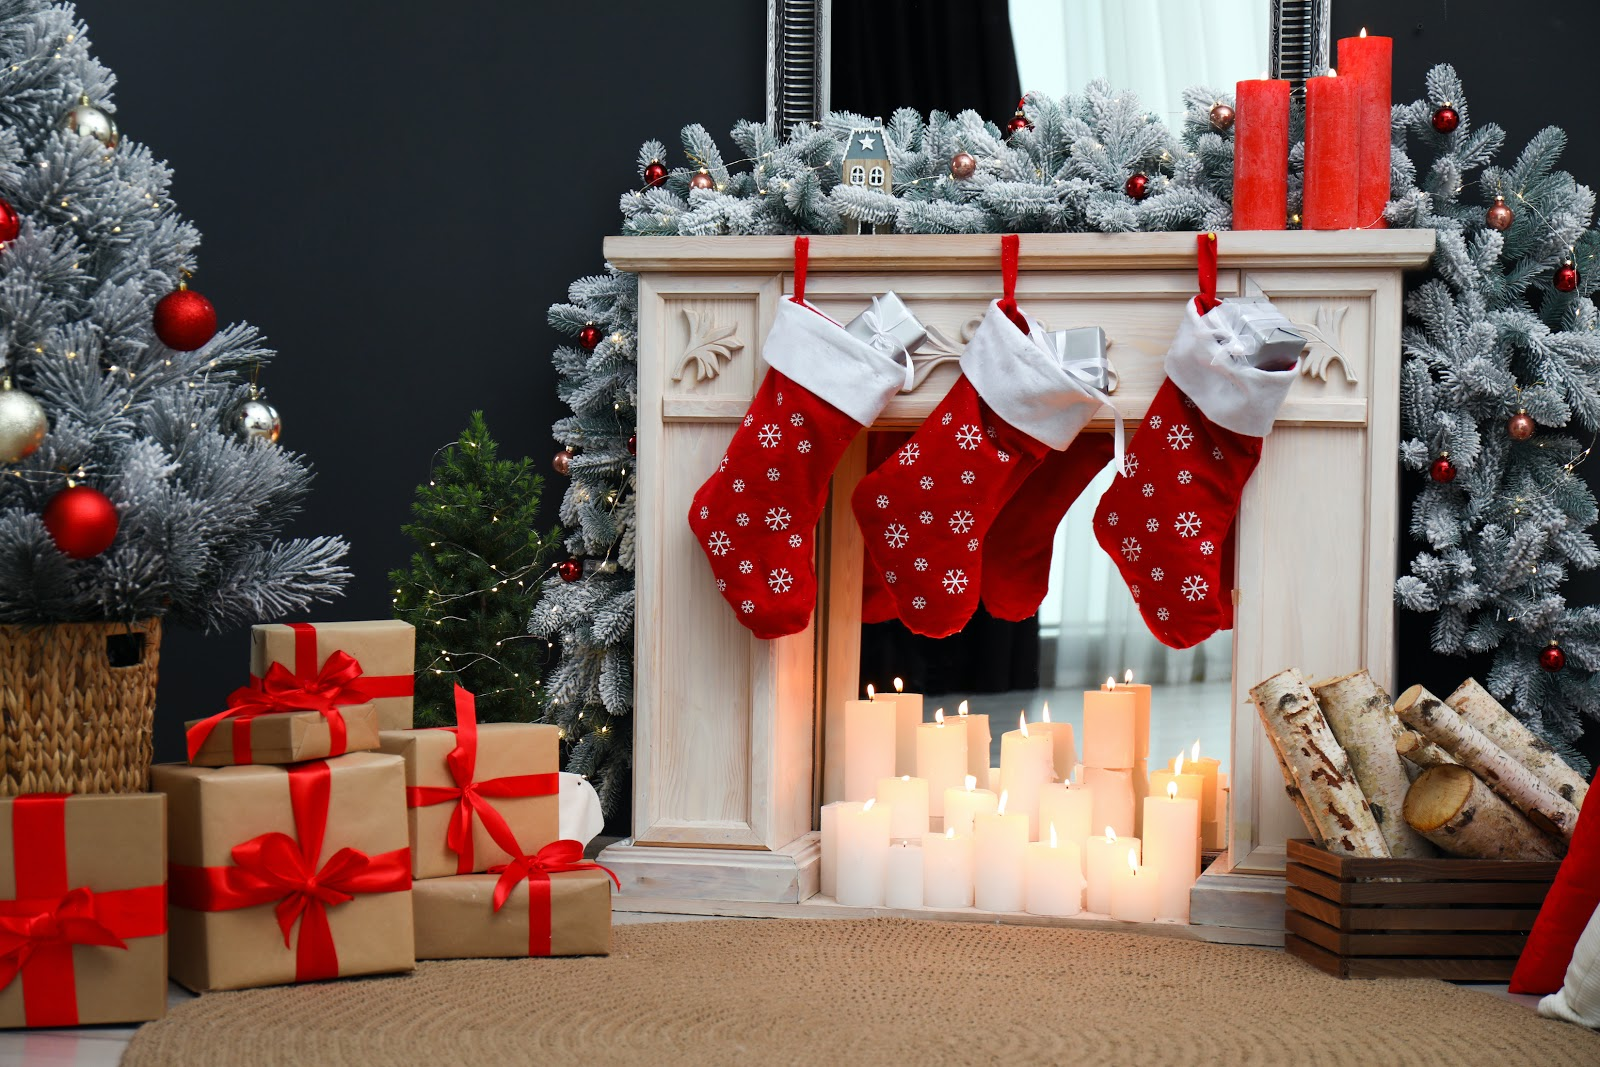 Christmas decorating ideas: A DIY fireplace made with a mirror, wooden mantel, and candles